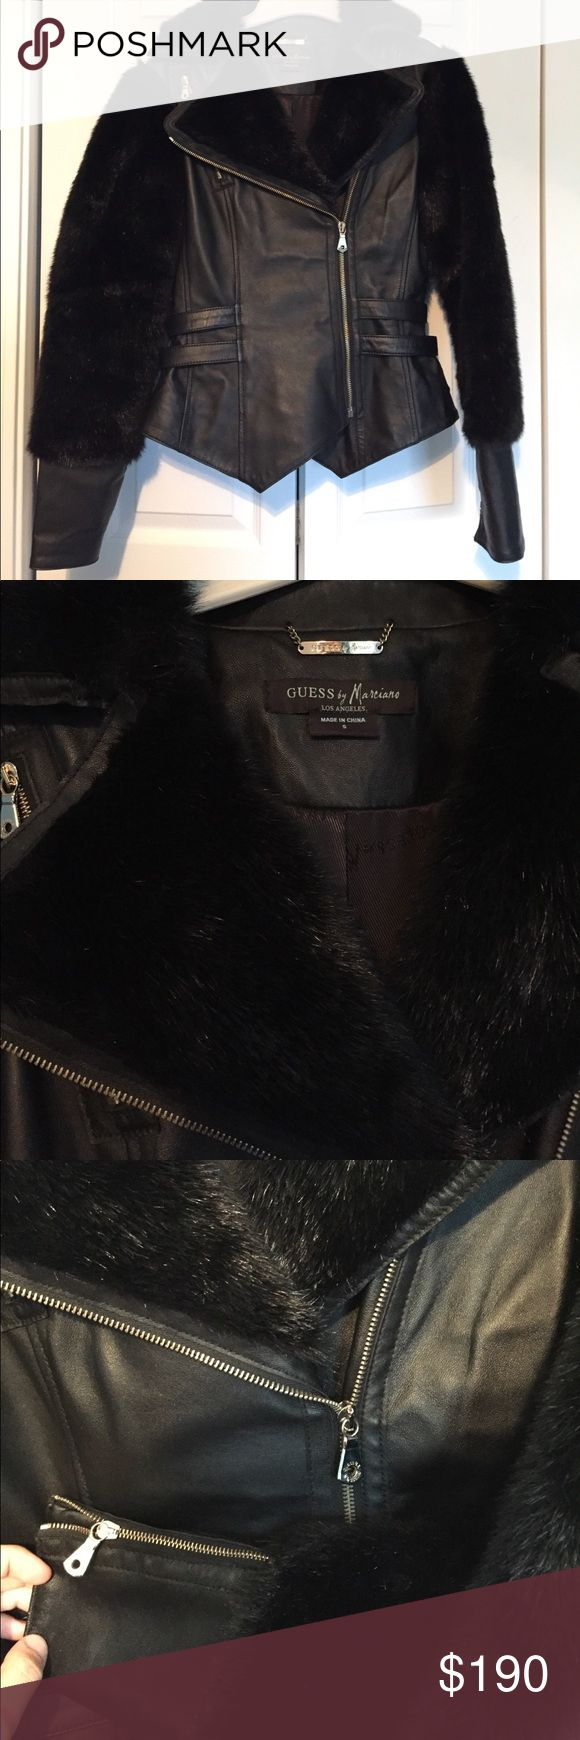 Black leather and fur GUESS jacket Black leather jacket with fur detail and gold zippers on front and arms of jacket. Fur on back as well as shown in pictures. Amazing condition no marks or scrapes Guess by Marciano Jackets & Coats